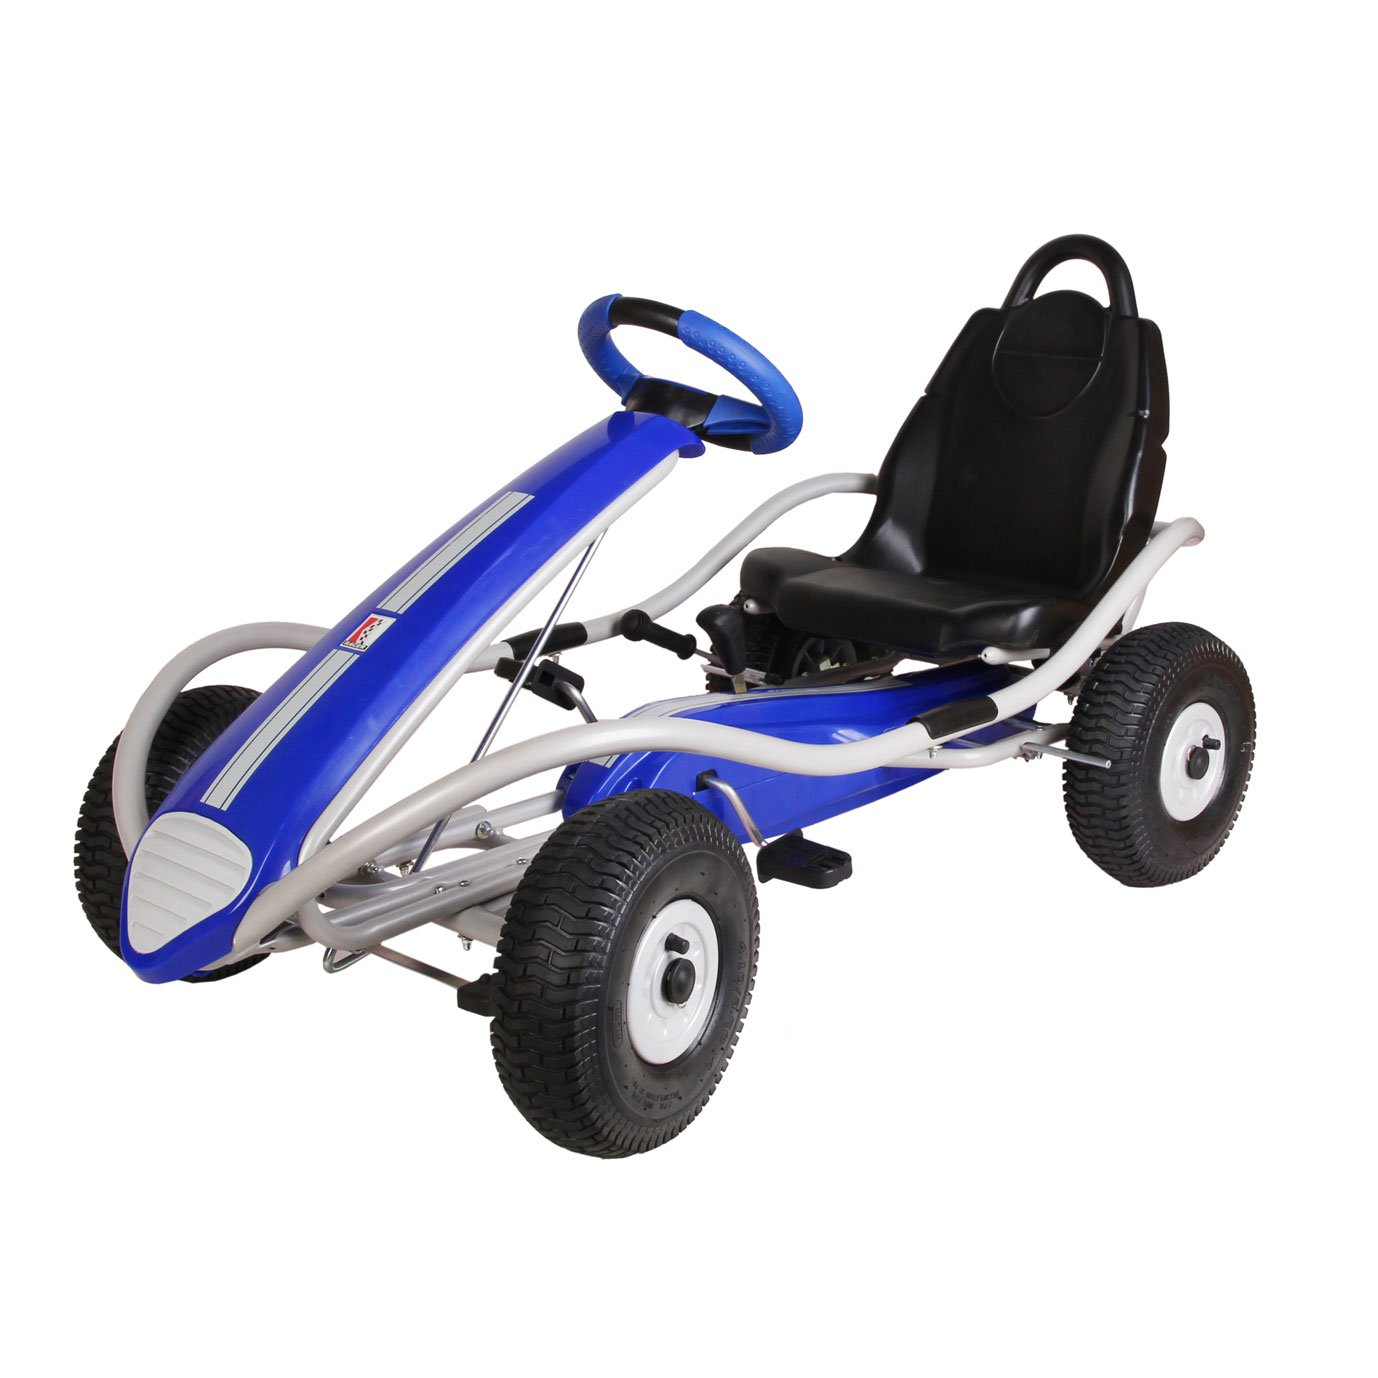 Kettler Kiddi-O Dakar Racer S Carbon Fiber Racing Ride On Pedal Go Kart